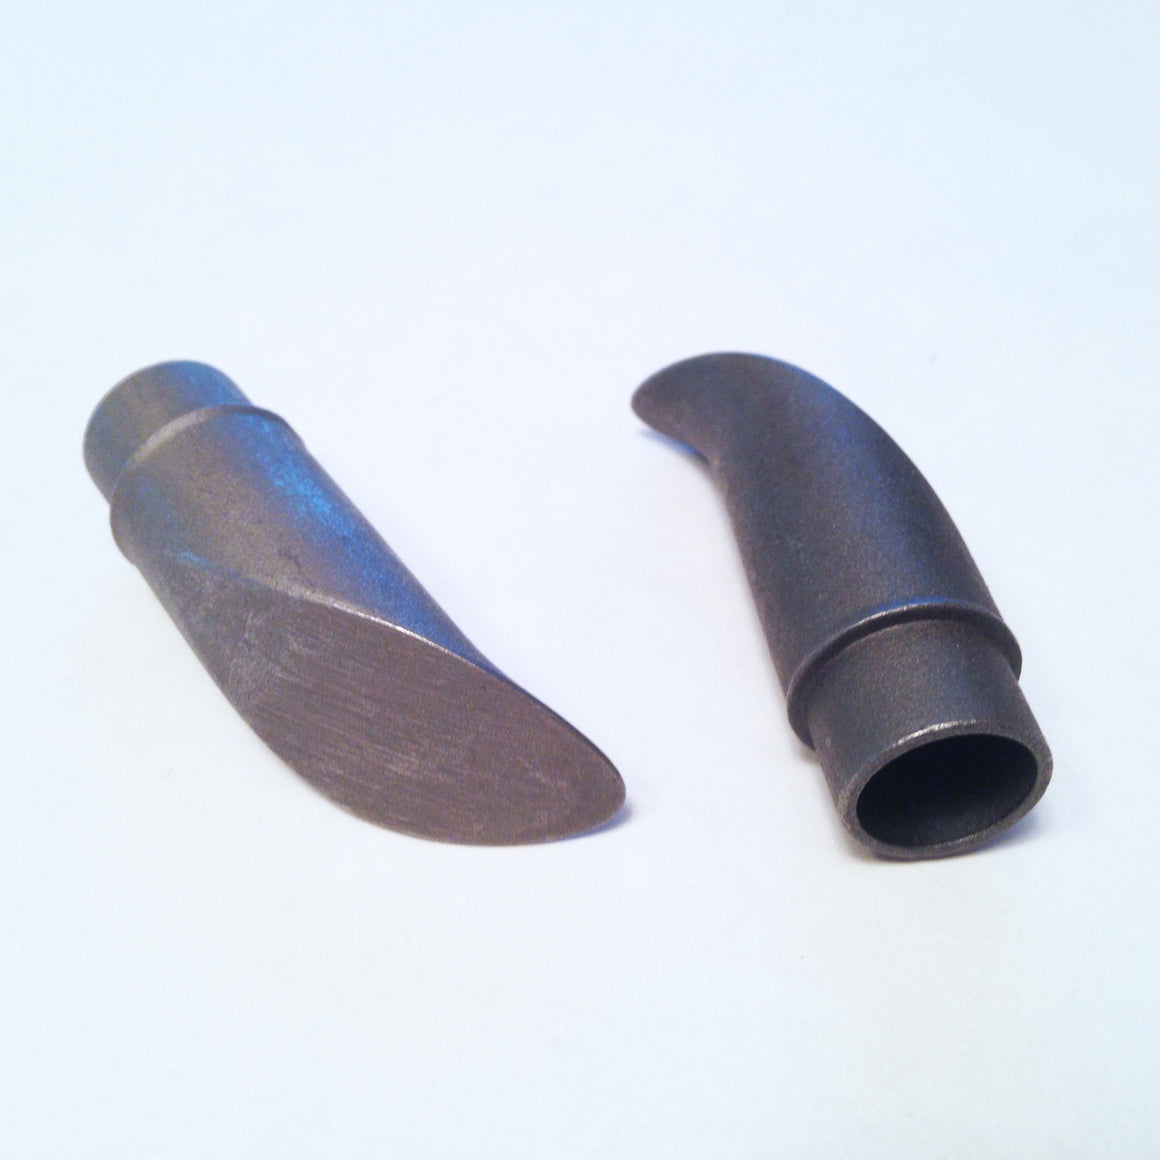 Seat stay tips for use with 14mm interior diameter tubes, curved